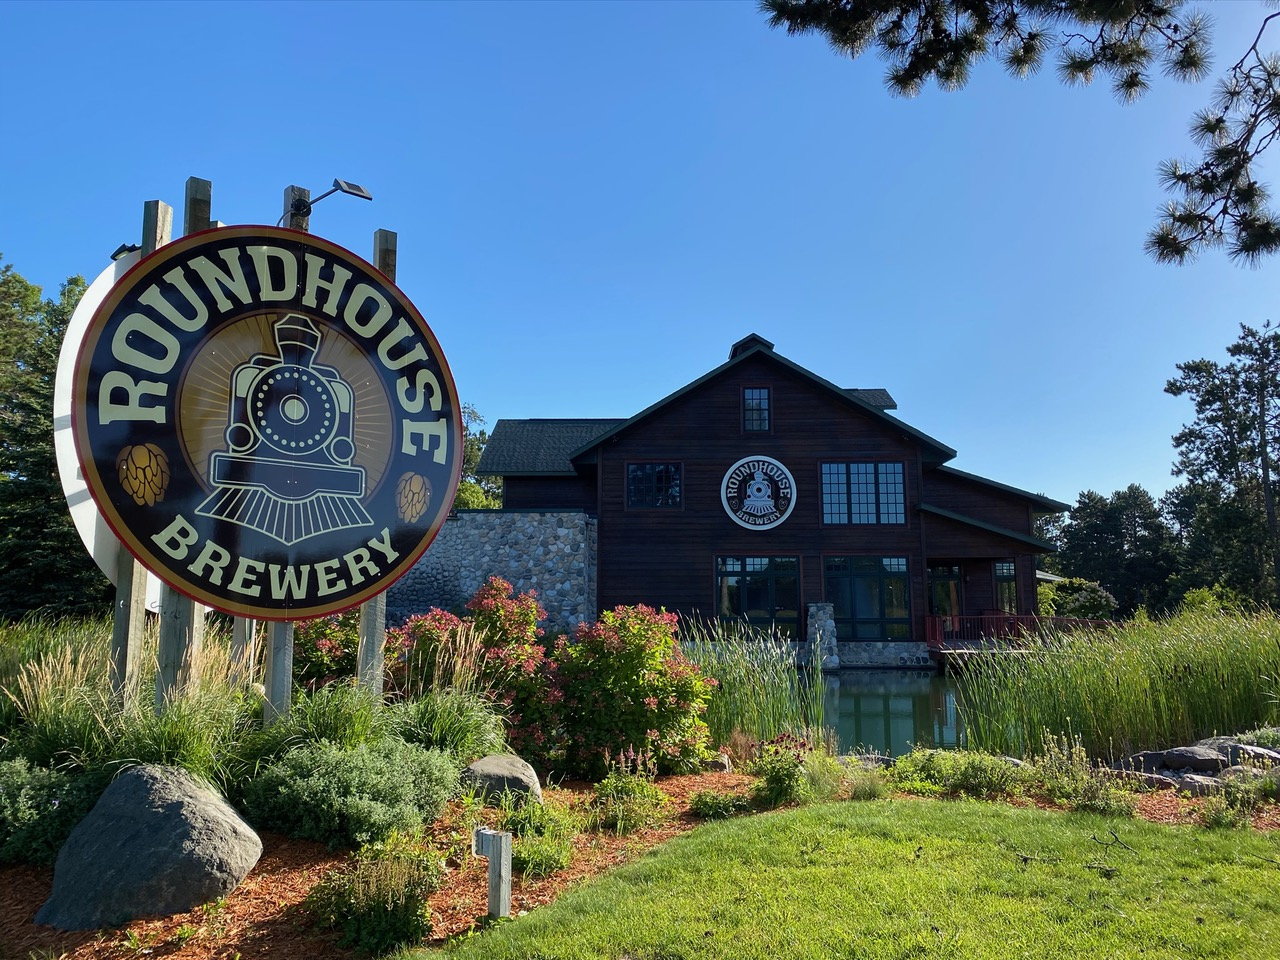 Roundhouse Brewery's new location in Nisswa, Minnesota • Photo via Roundhouse Brewery